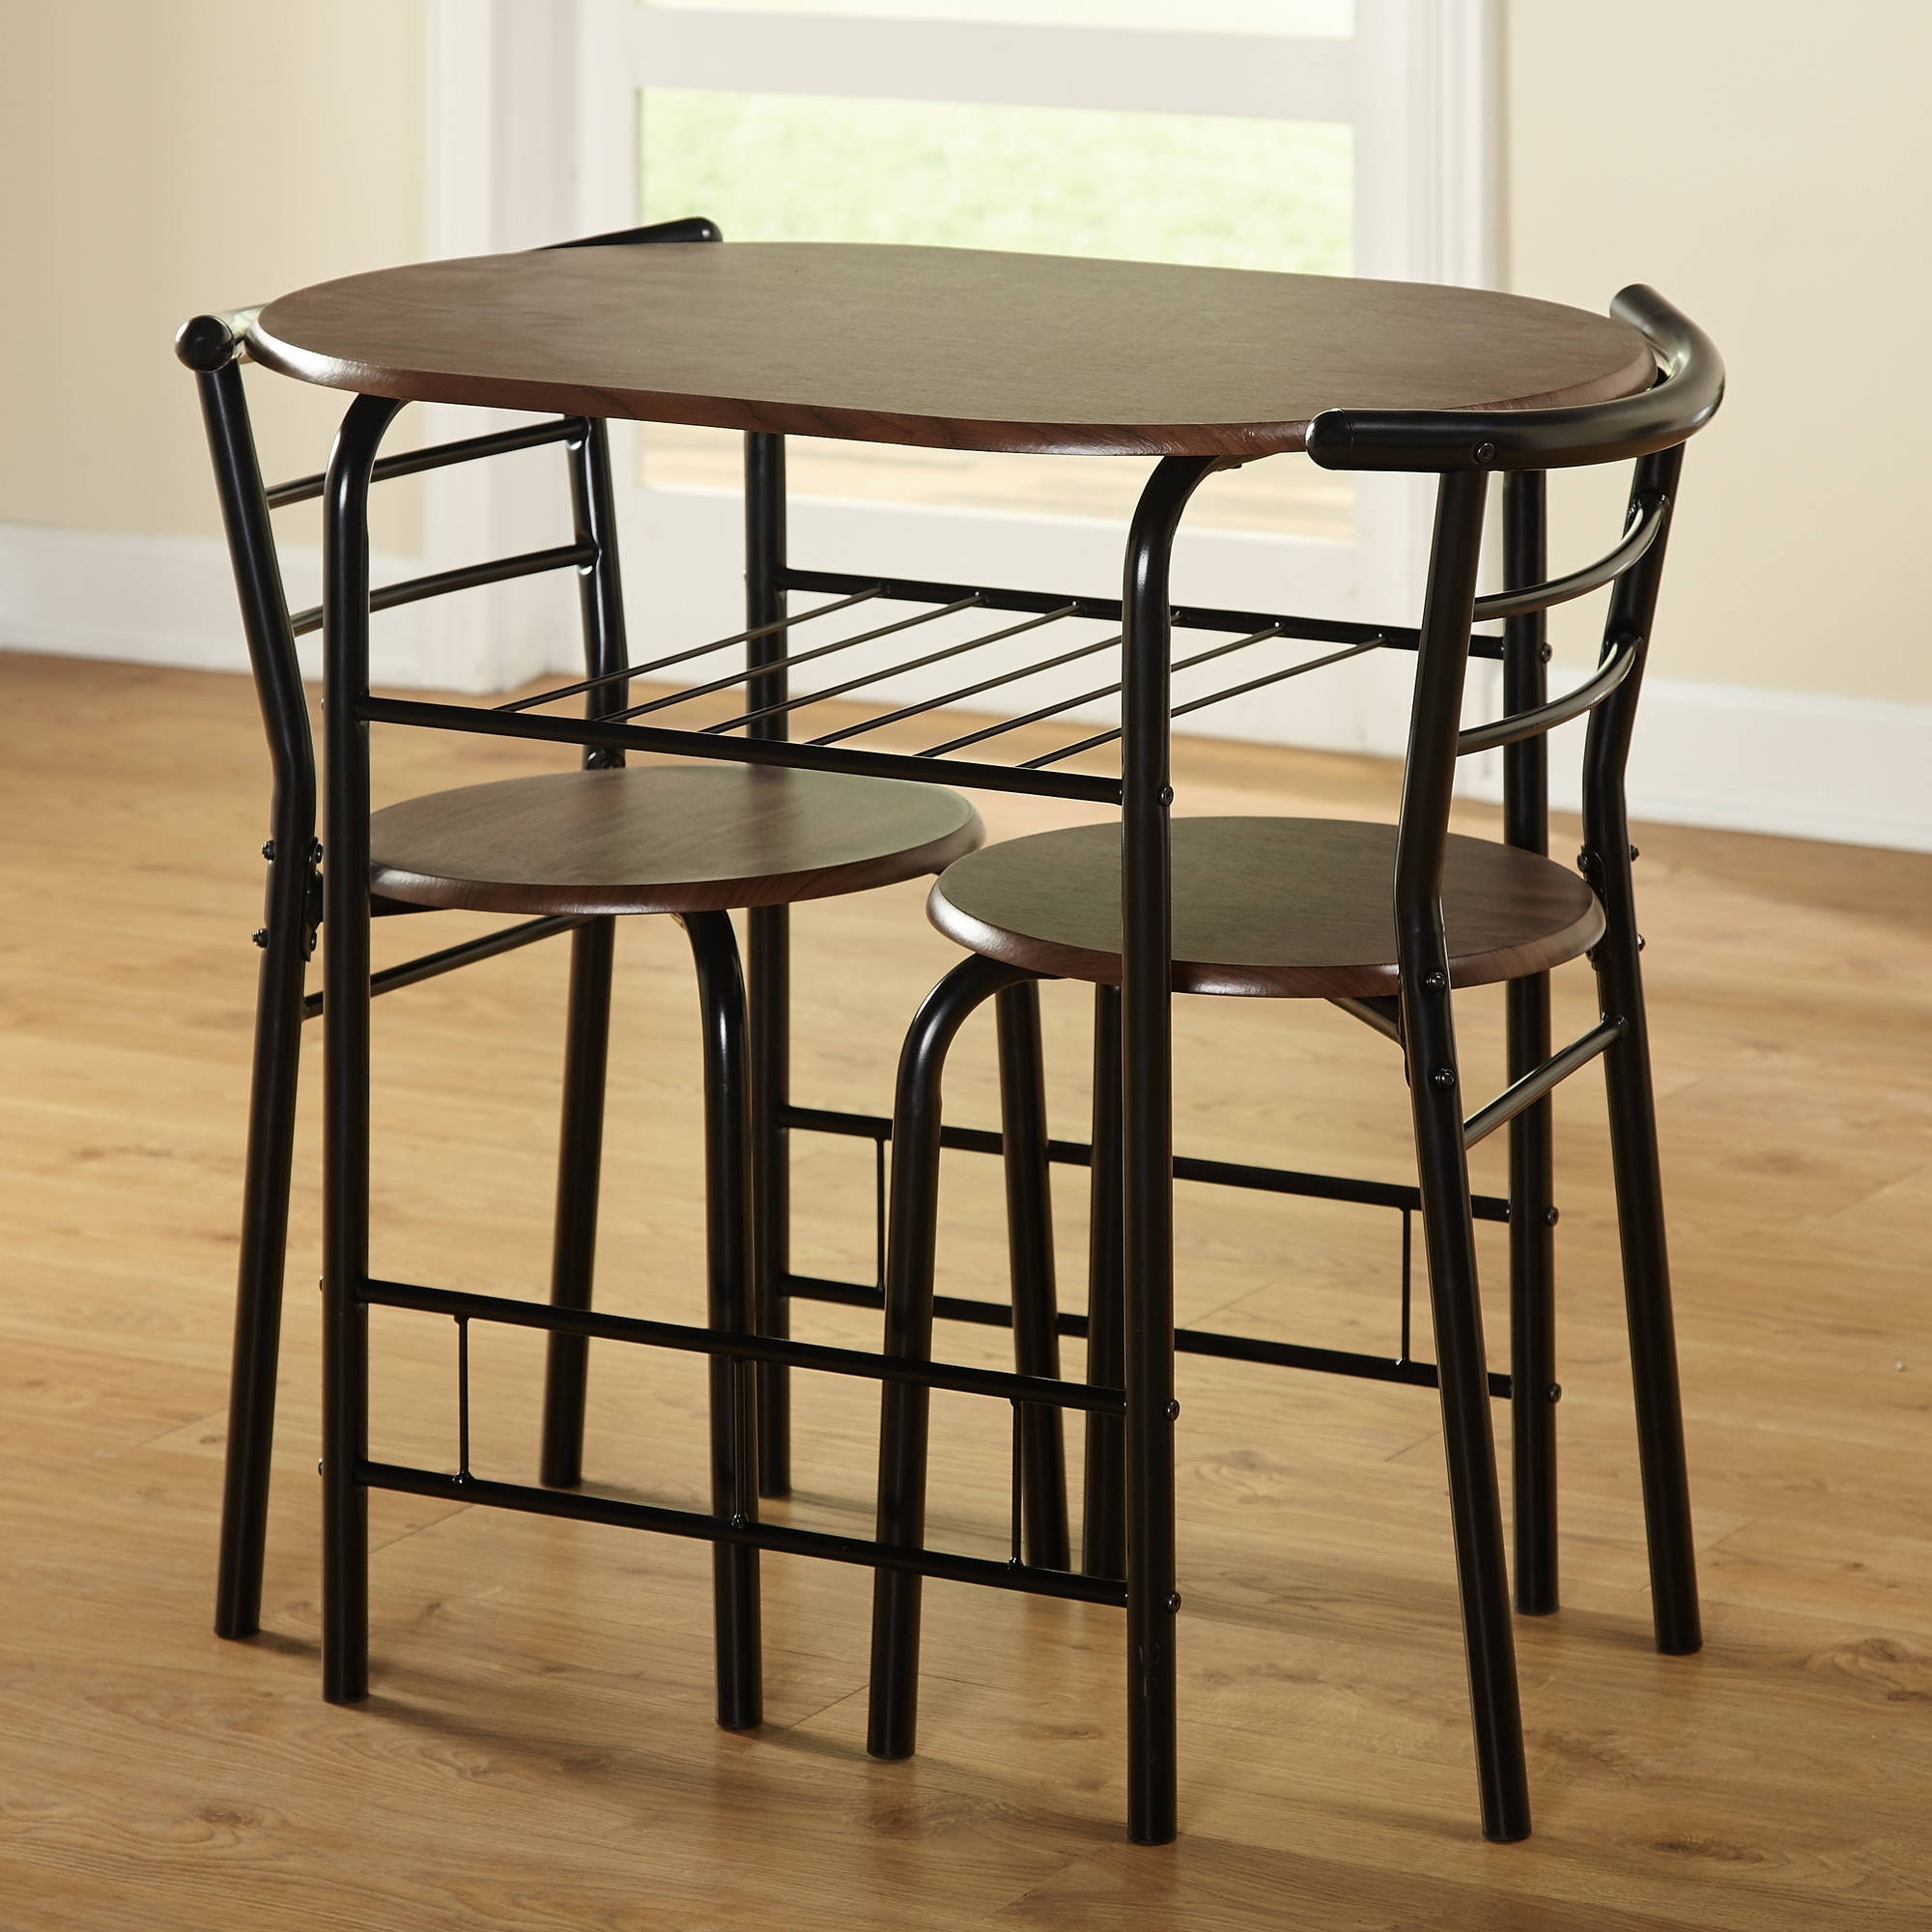 Dining Table Sets For 2 For Current 3 Piece Bistro Set Dining Oval Table 2 Chairs W/ Shelf Seat Black (View 9 of 25)